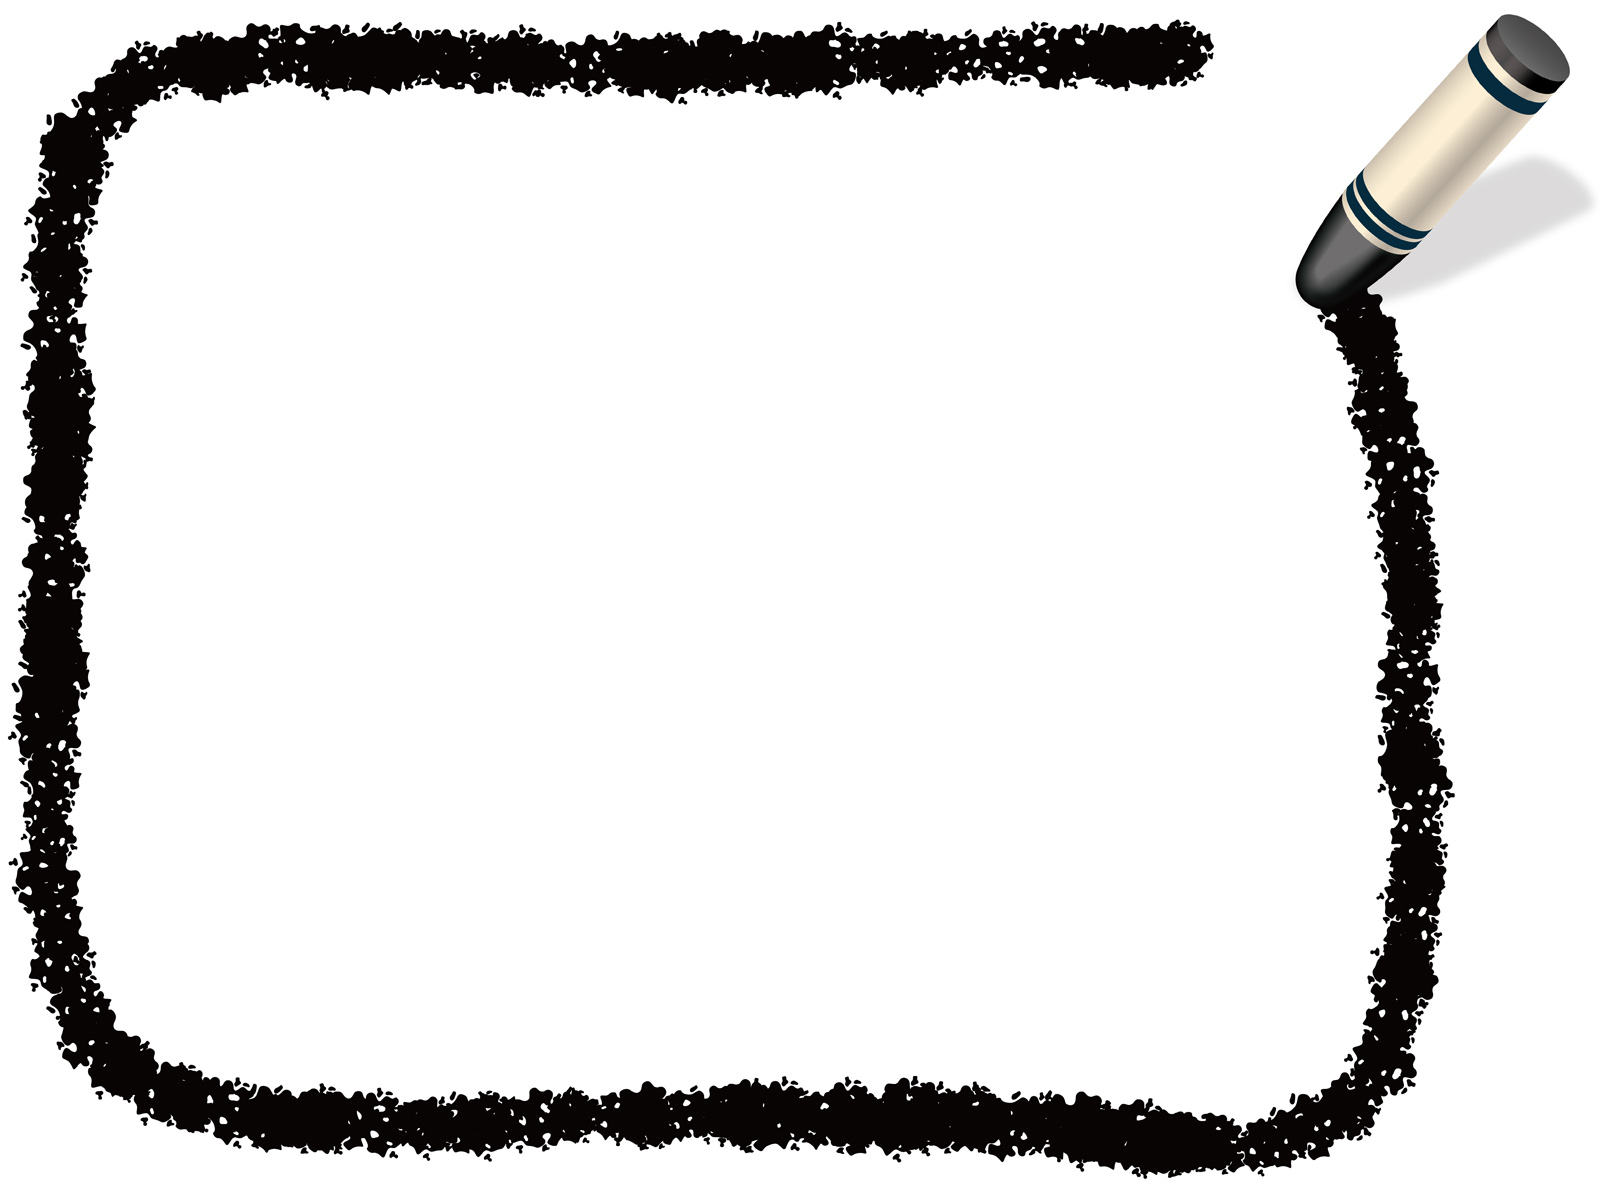 crayon border clipart black and white - Clip Art Library